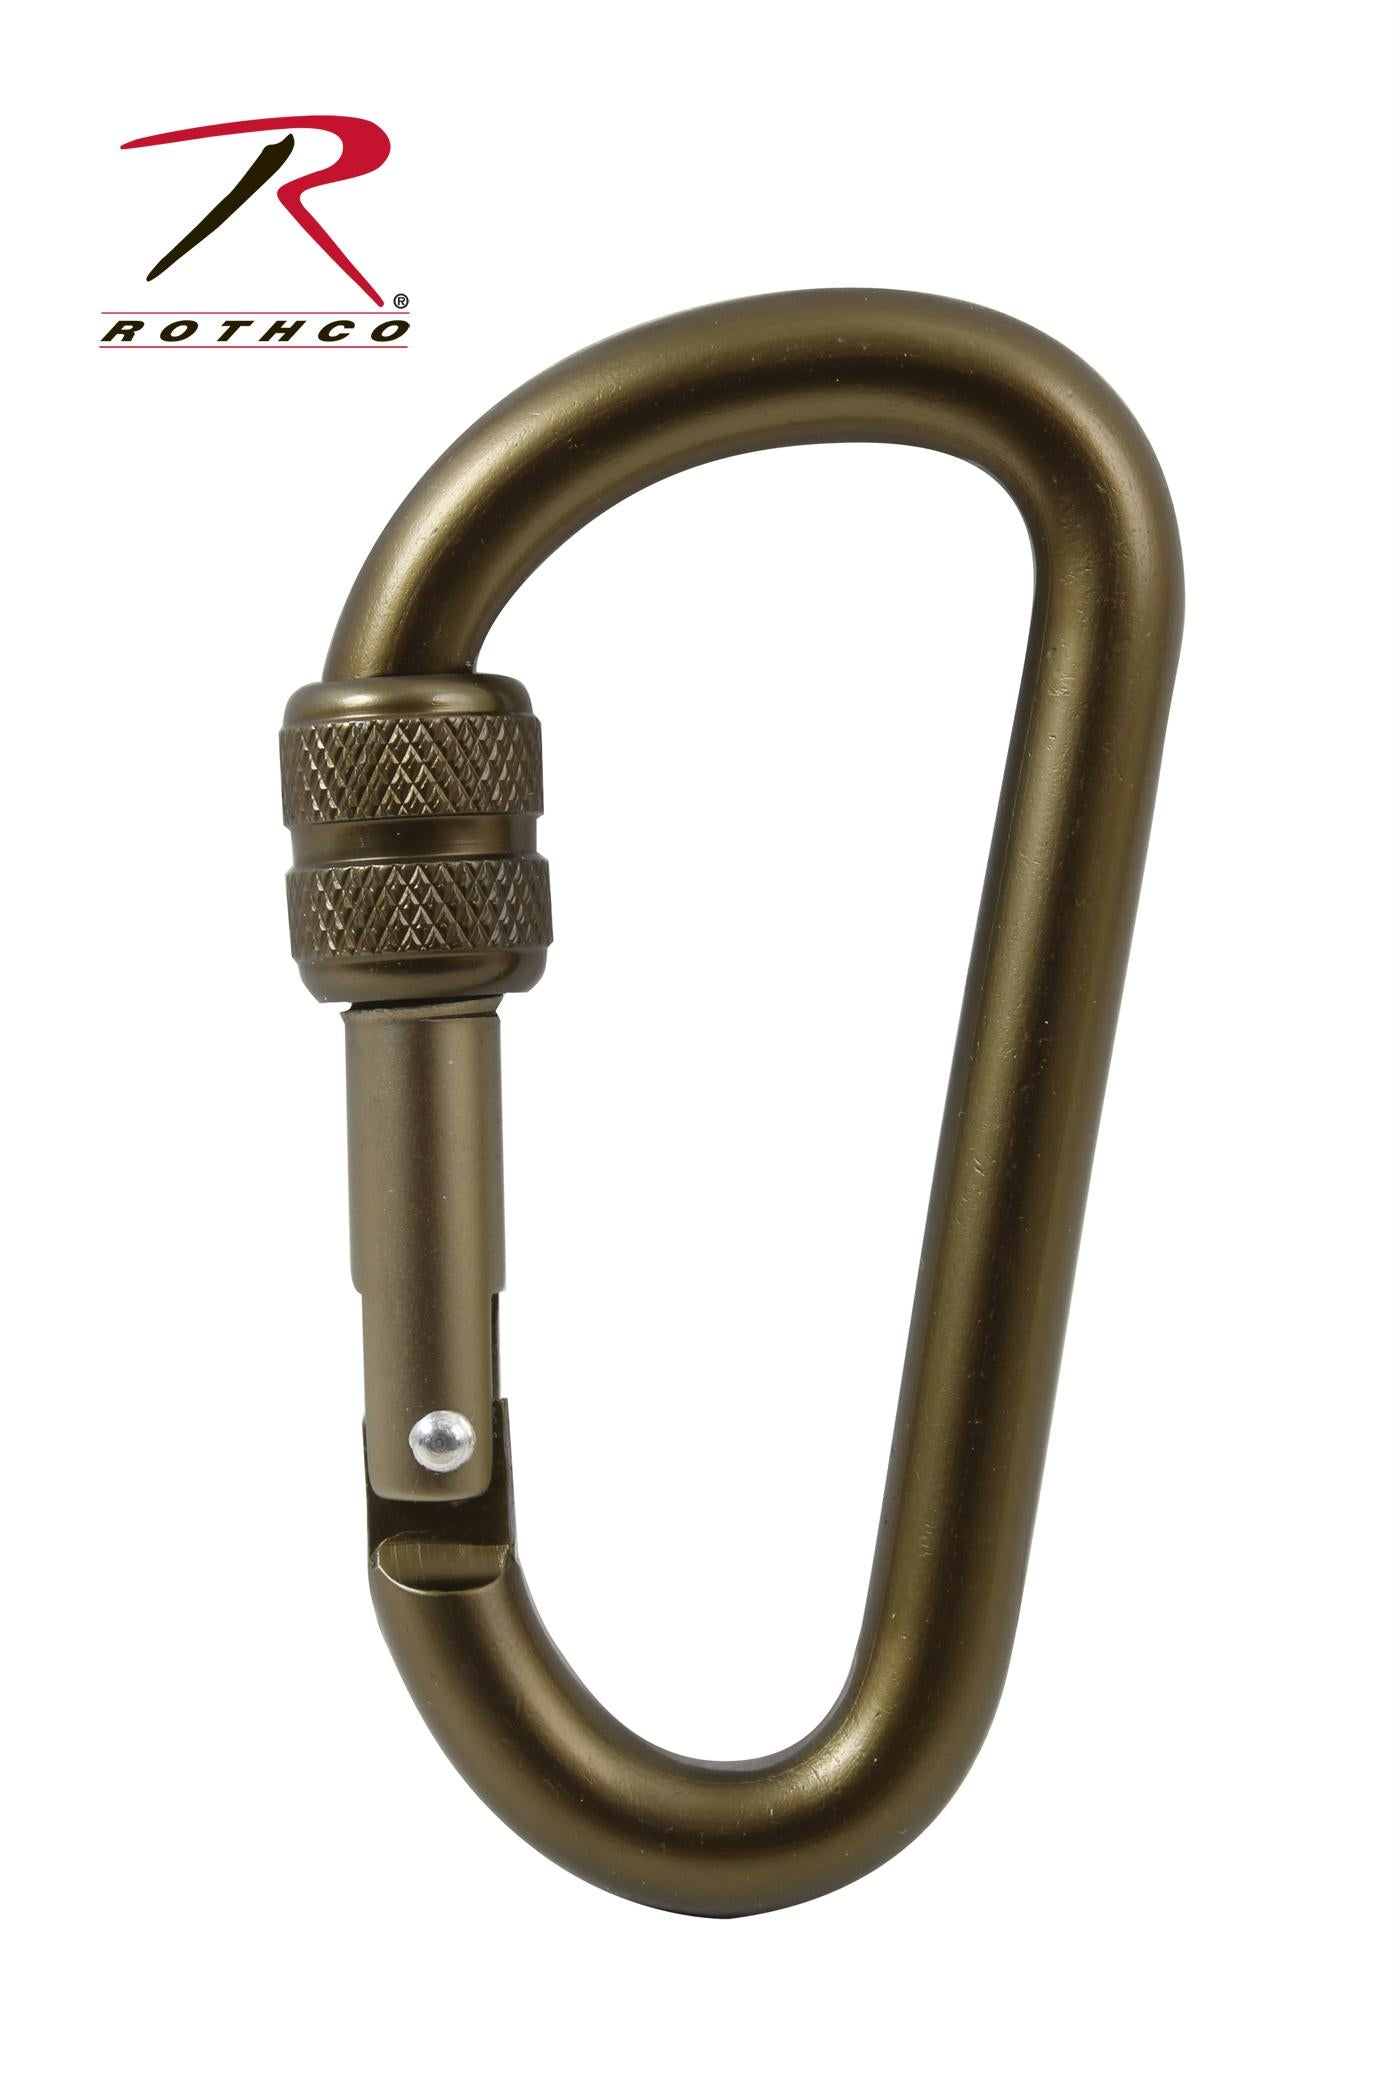 Rothco 80MM Locking Carabiner - Coyote Brown